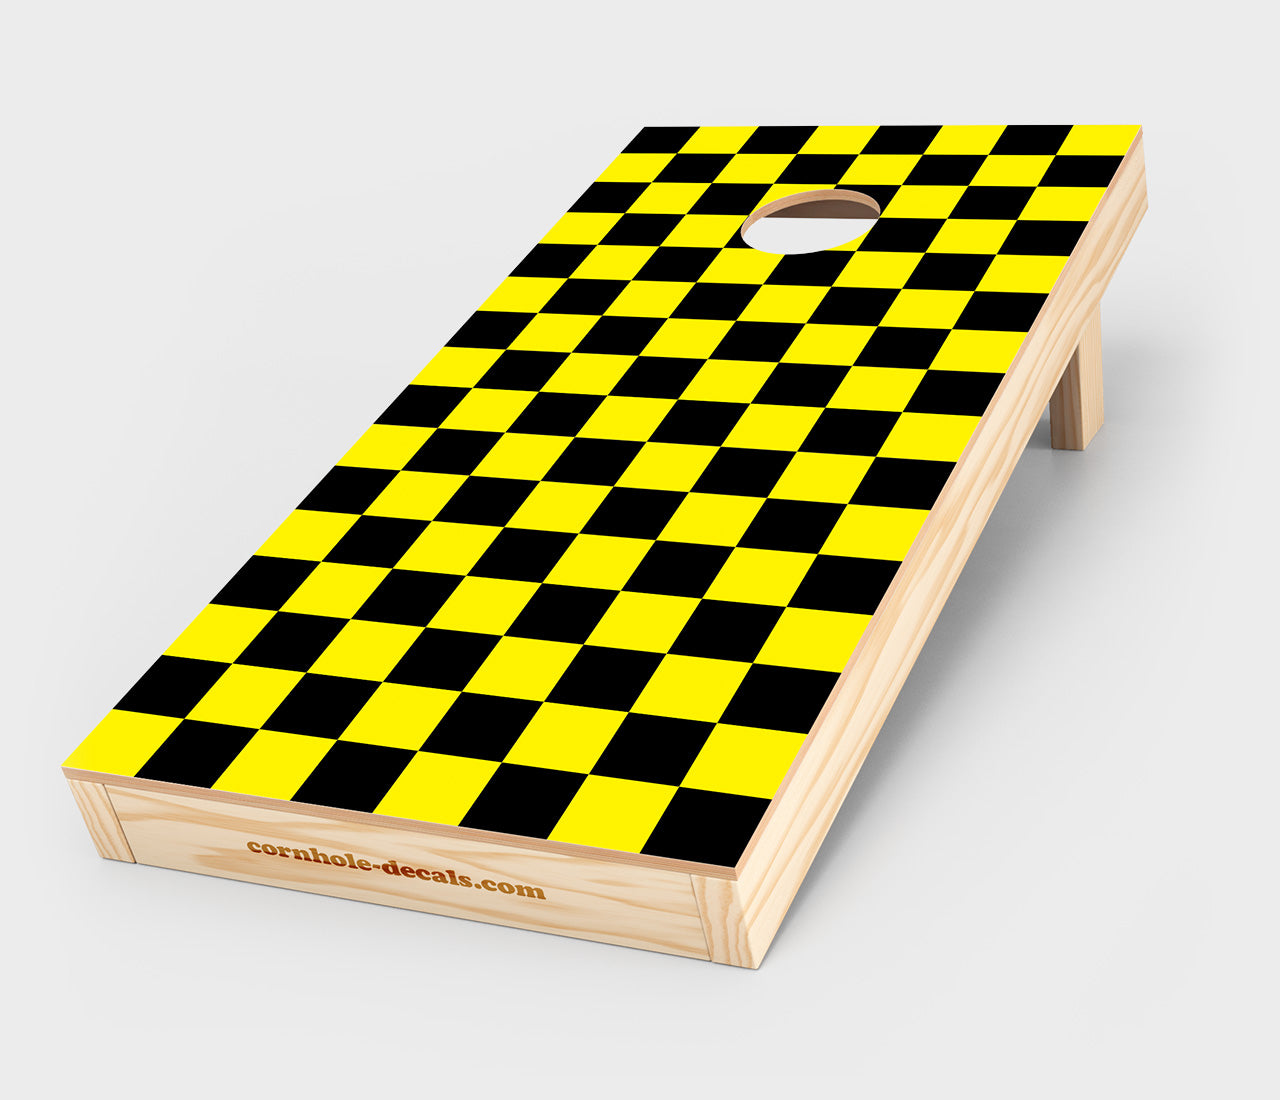 Chuggles Cornhole - Black and Yellow Checkered Cornhole Decal